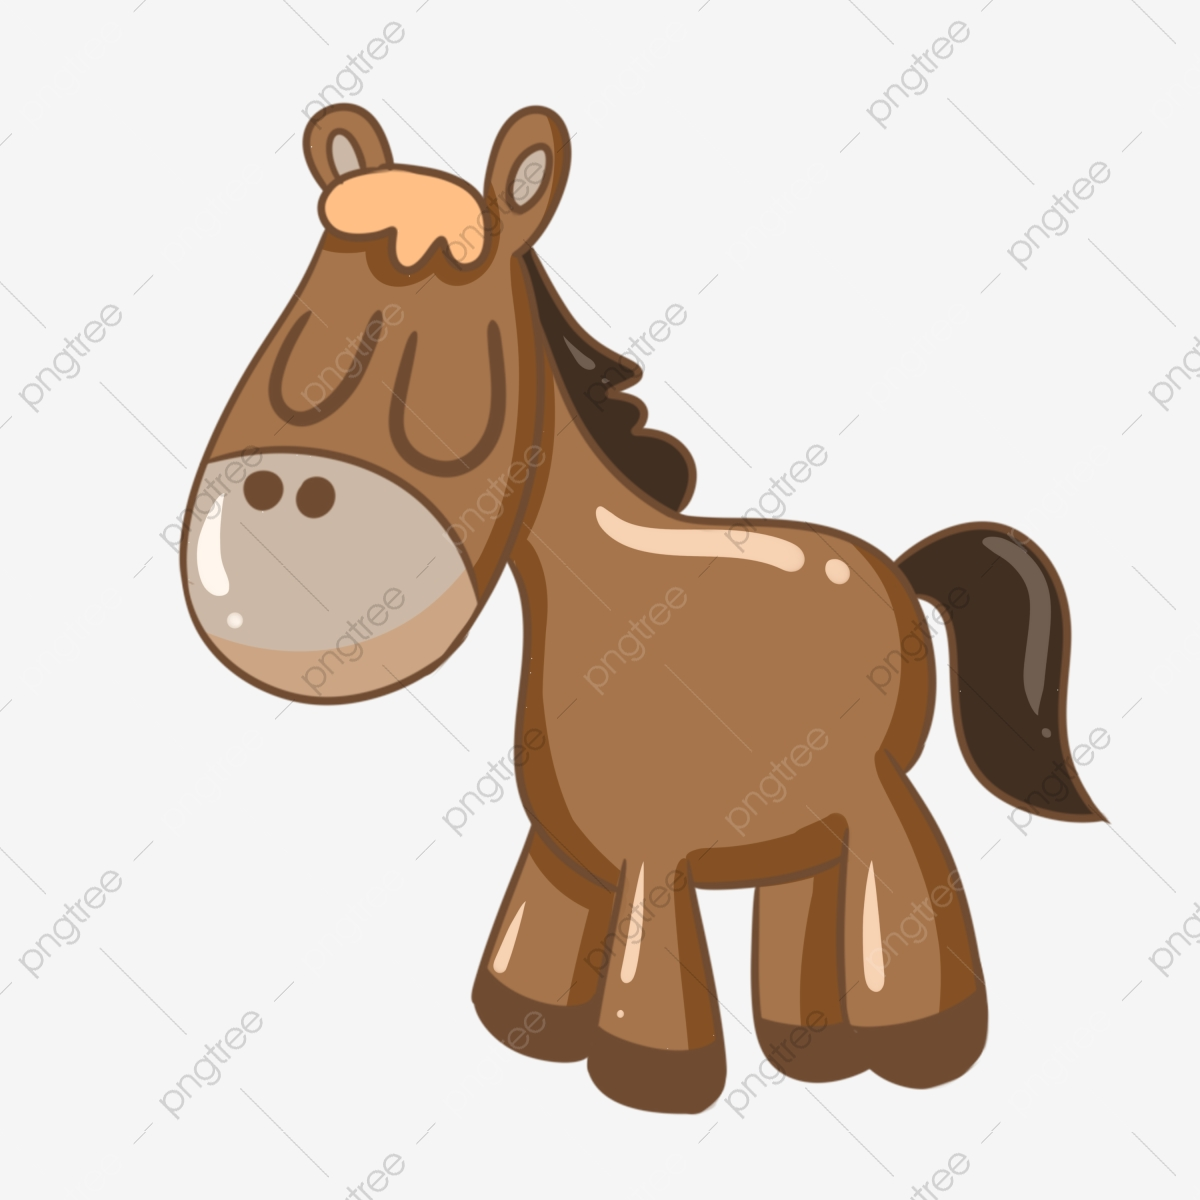 Cute Pony Illustration Brown Pony Cartoon Horse Horse Riding Horse Clipart Pony Animal Png Transparent Clipart Image And Psd File For Free Download